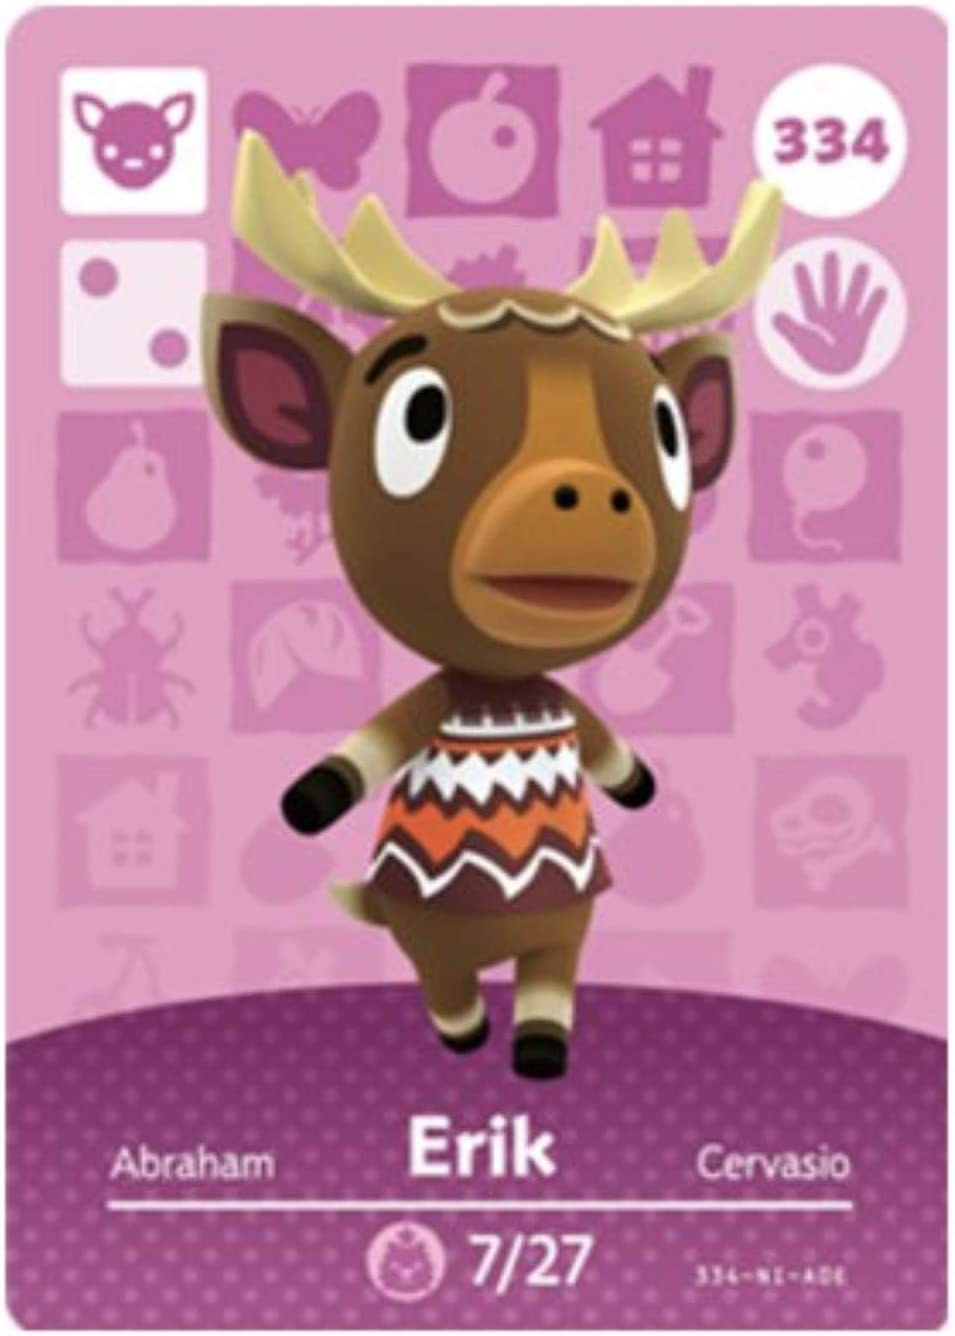 No.334 Erik Animal Crossing Villager Cards Series 4. Third Party NFC Card. Water Resistant